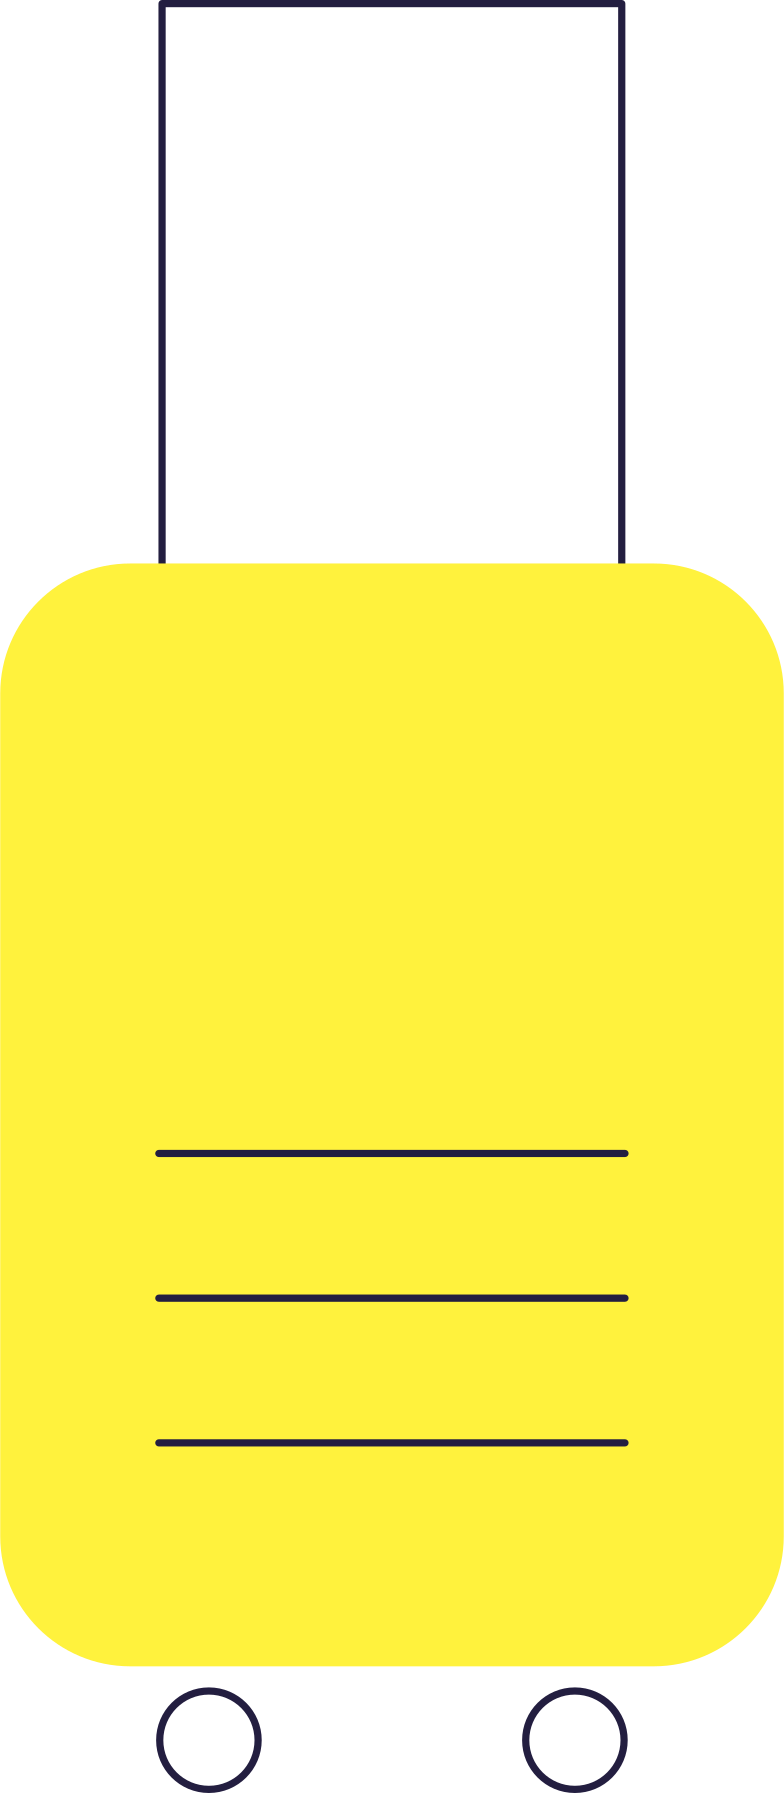 style luggage Vector images in PNG and SVG | Icons8 Illustrations